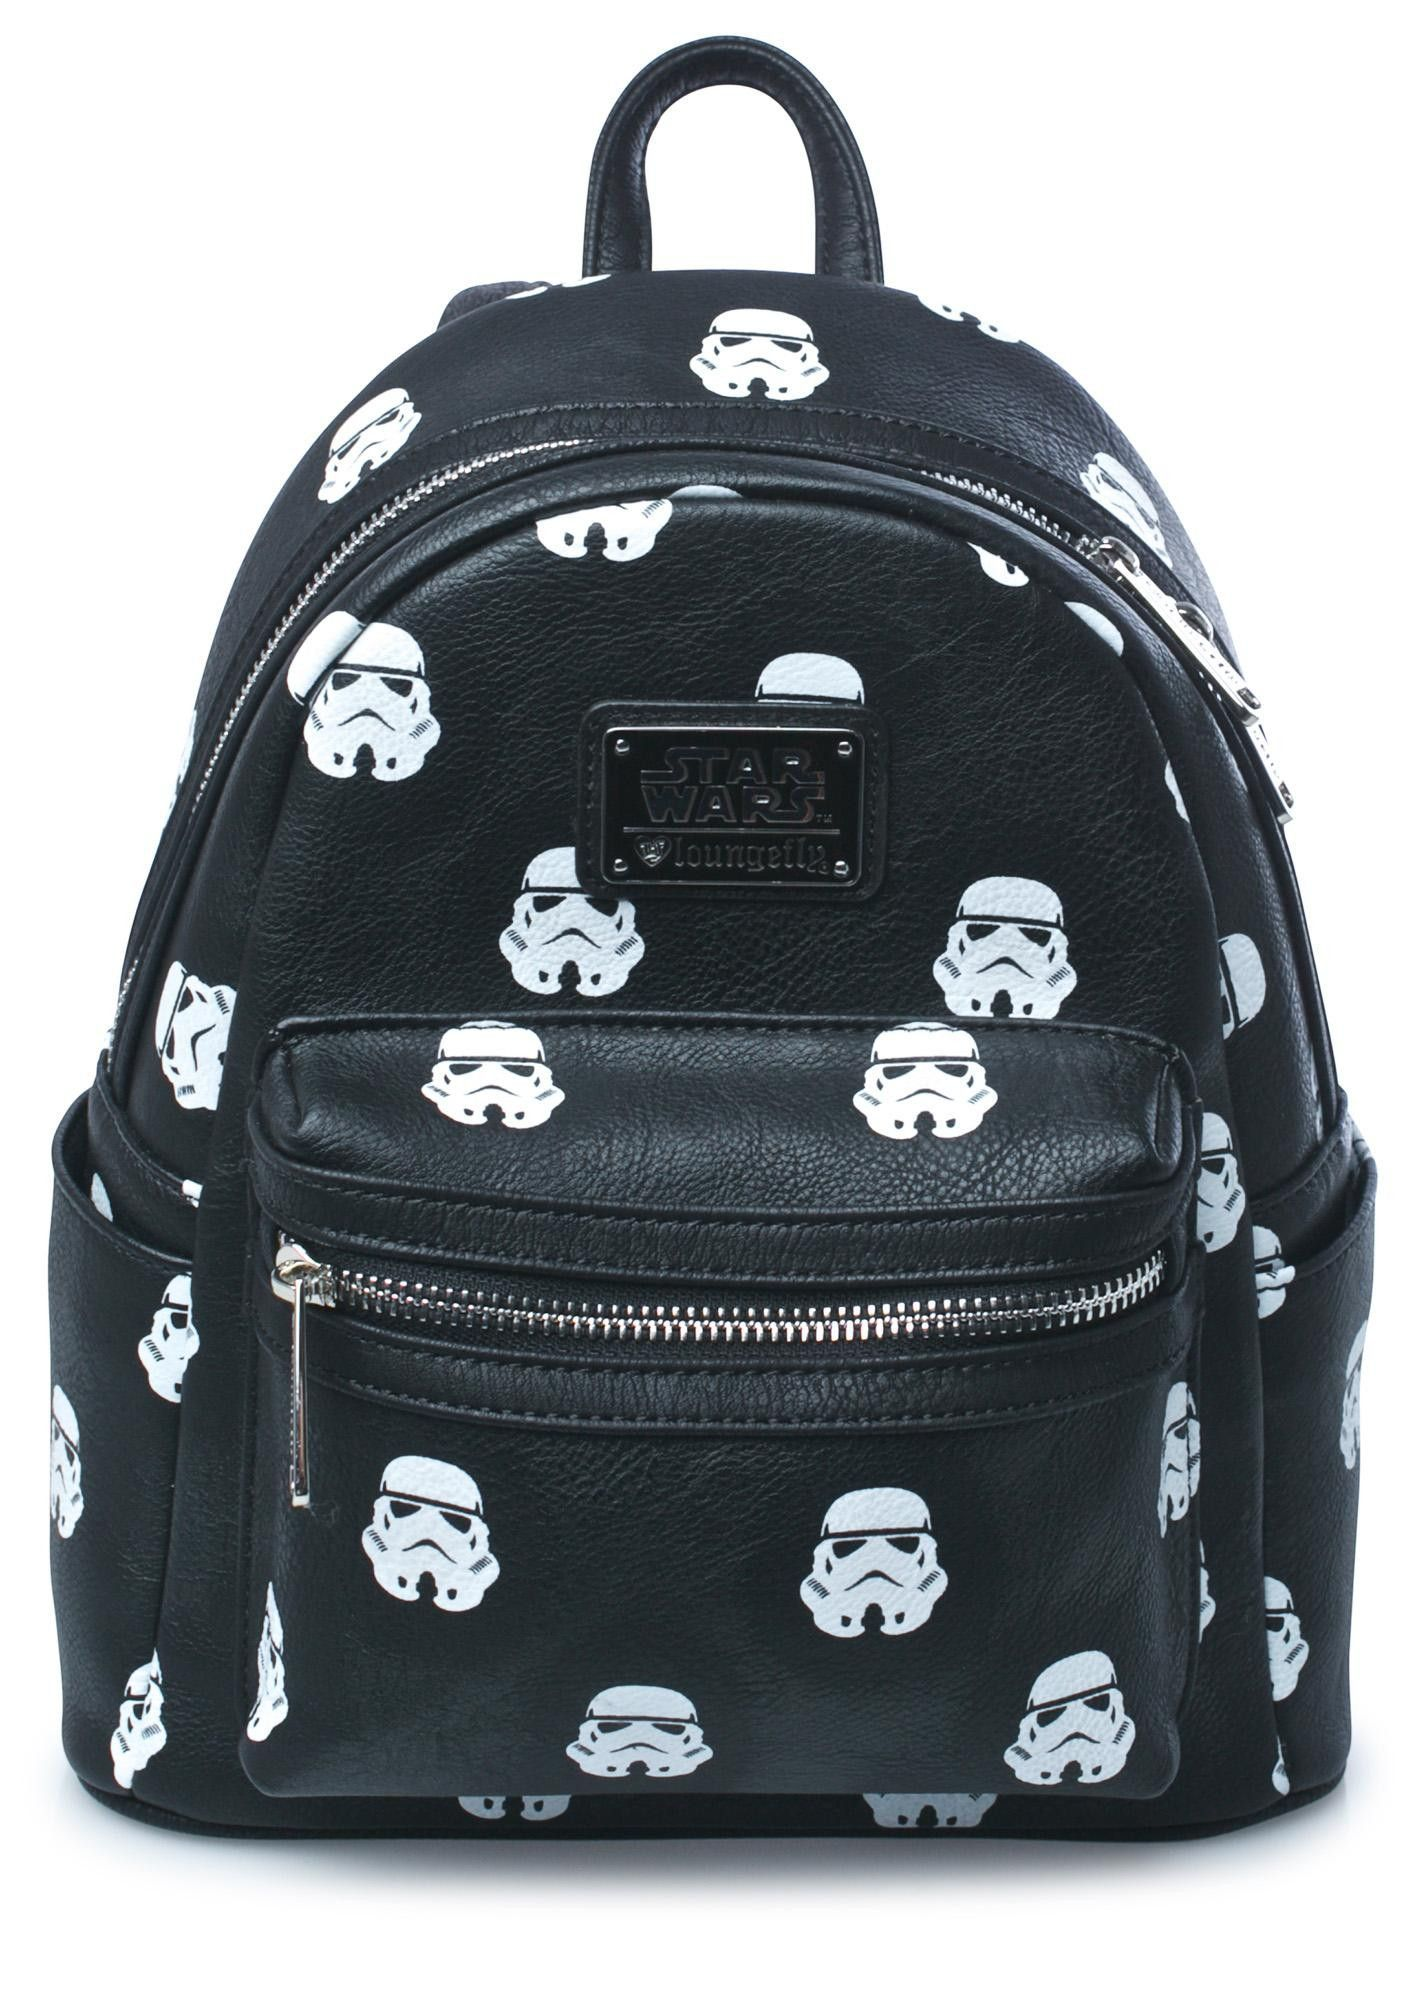 Star Wars Stormtrooper Print Mini Faux Leather Backpack by Loungefly ... 472bfb9c68c